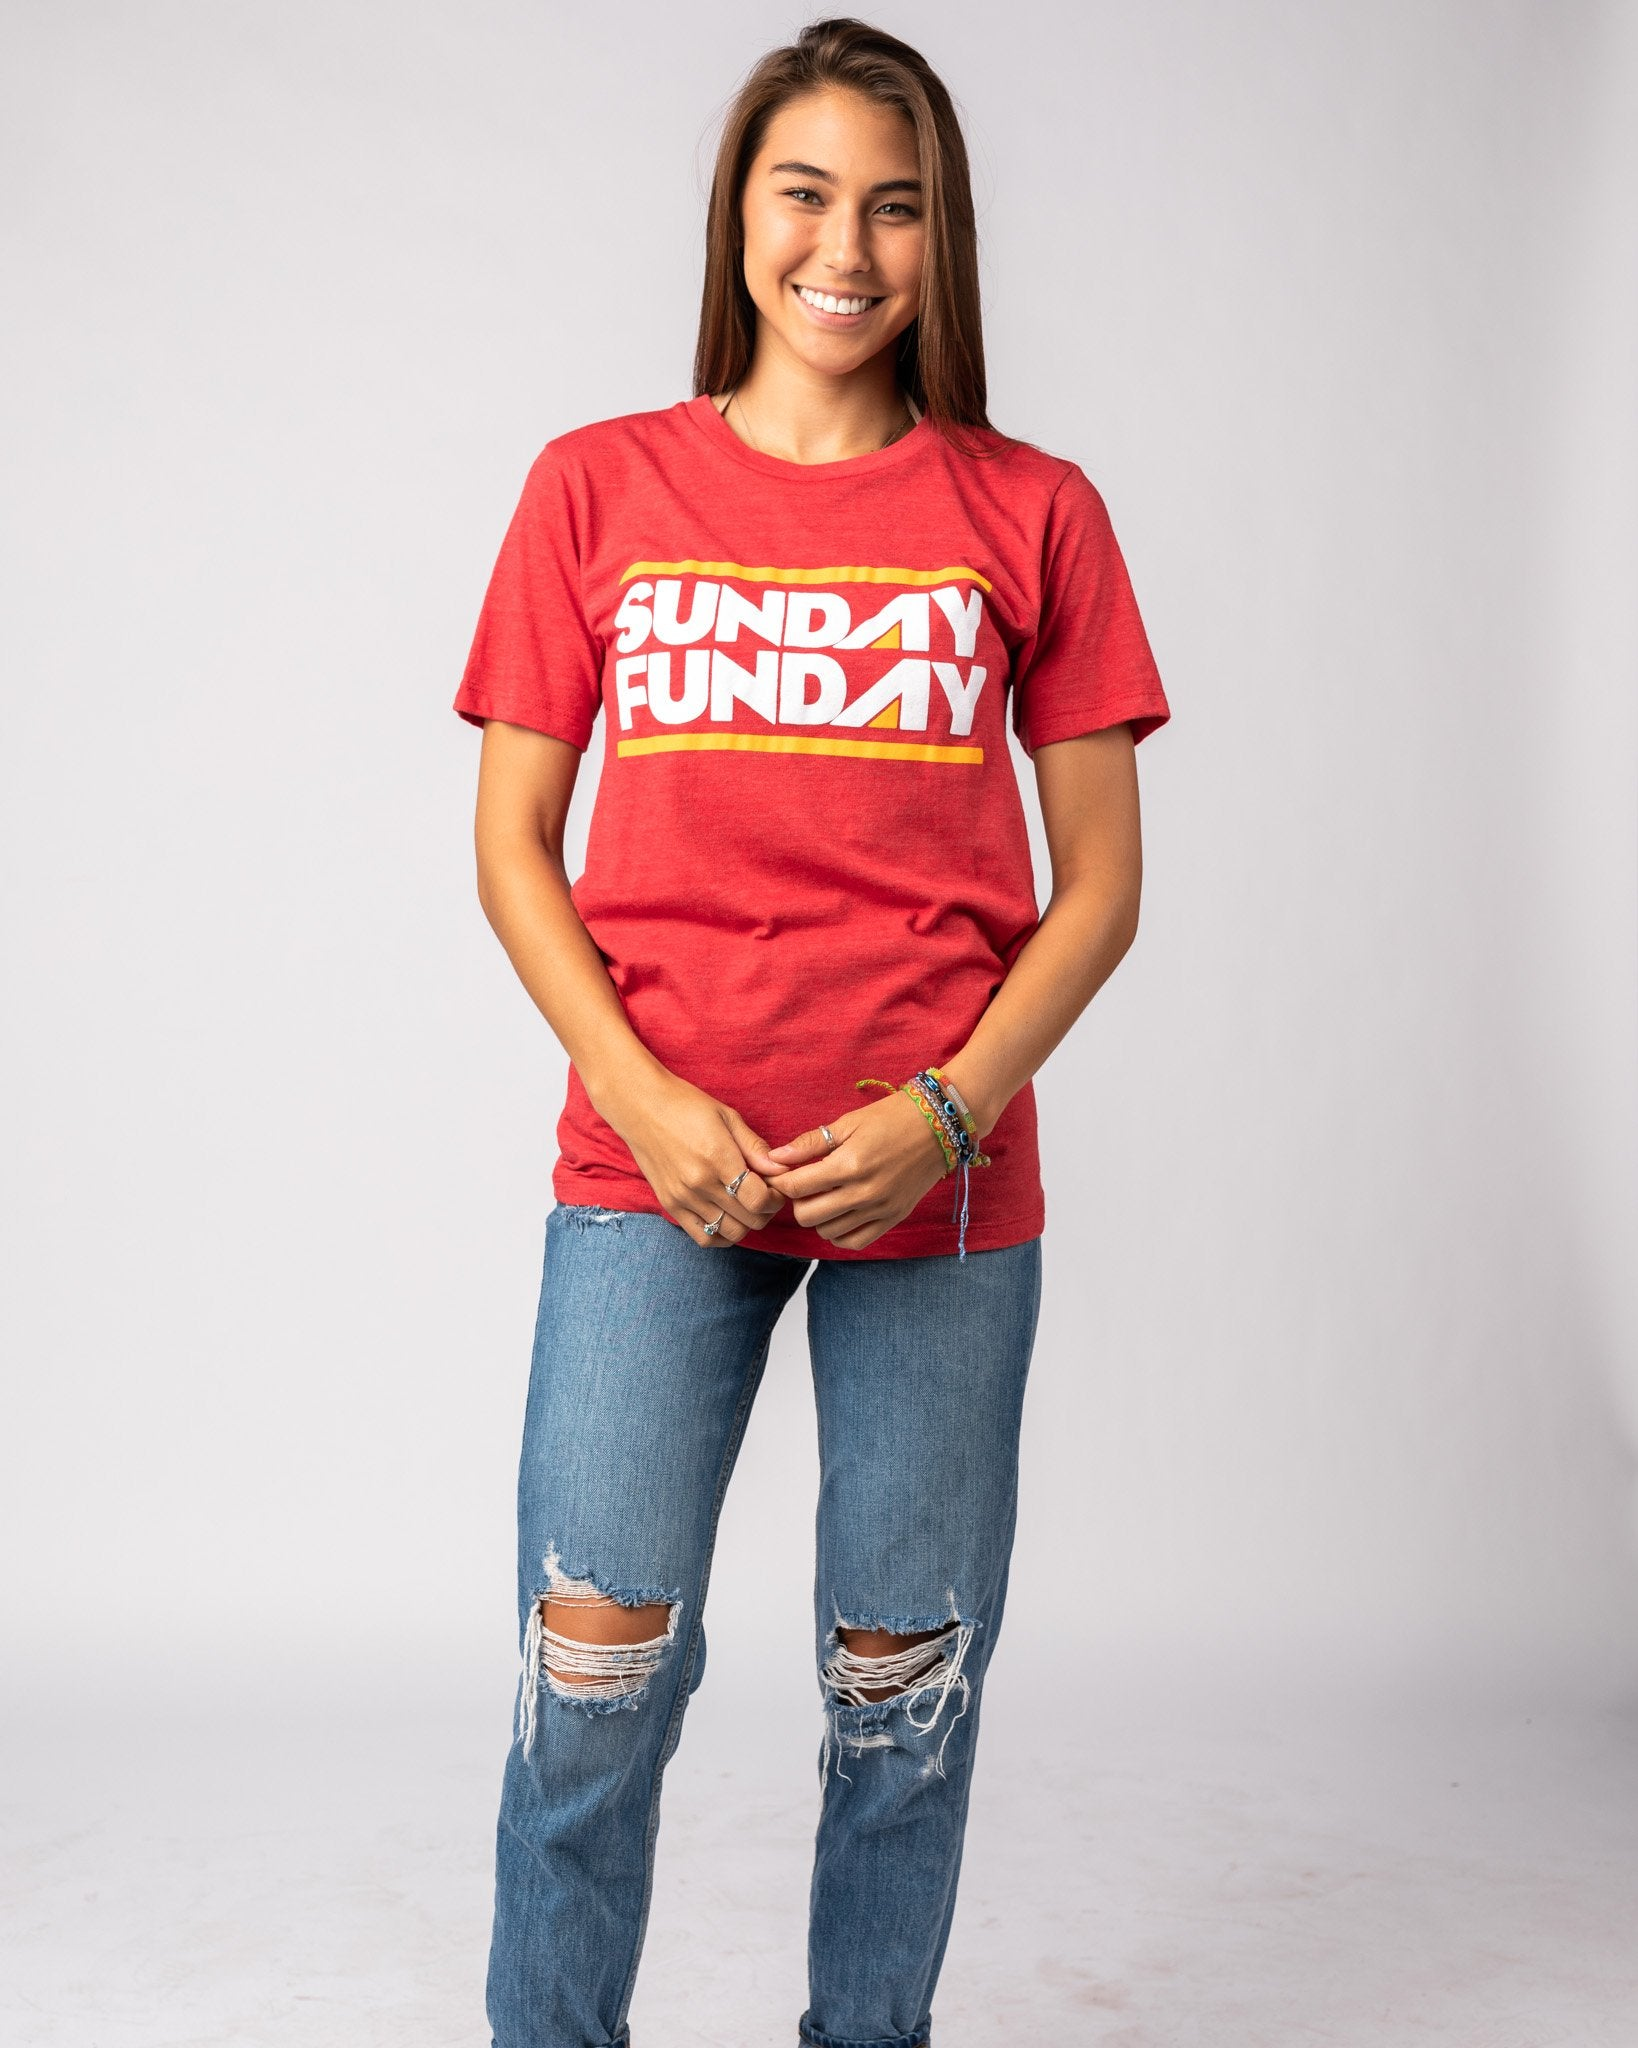 Red Sunday Funday Vintage T-Shirt Wide